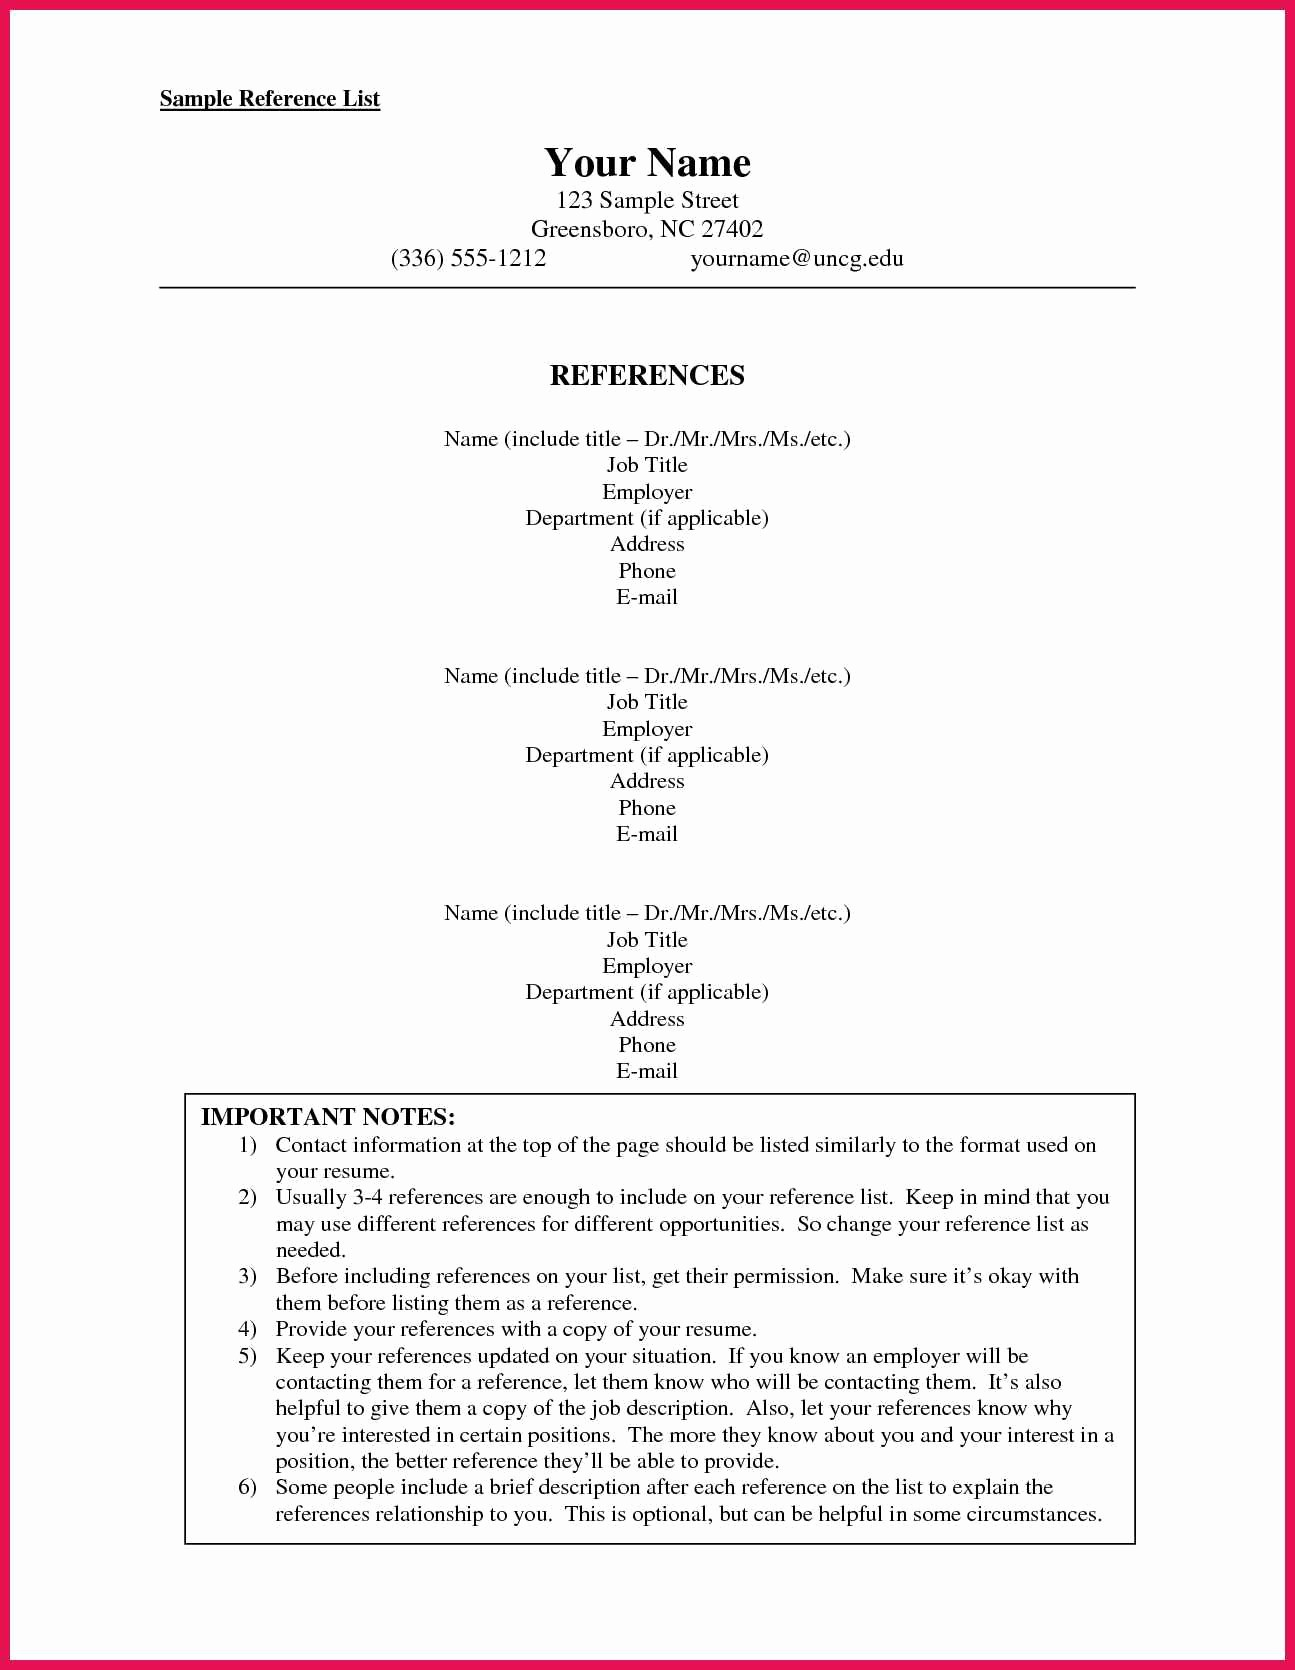 Sample Of References for Resume Inspirational How to format A Reference List